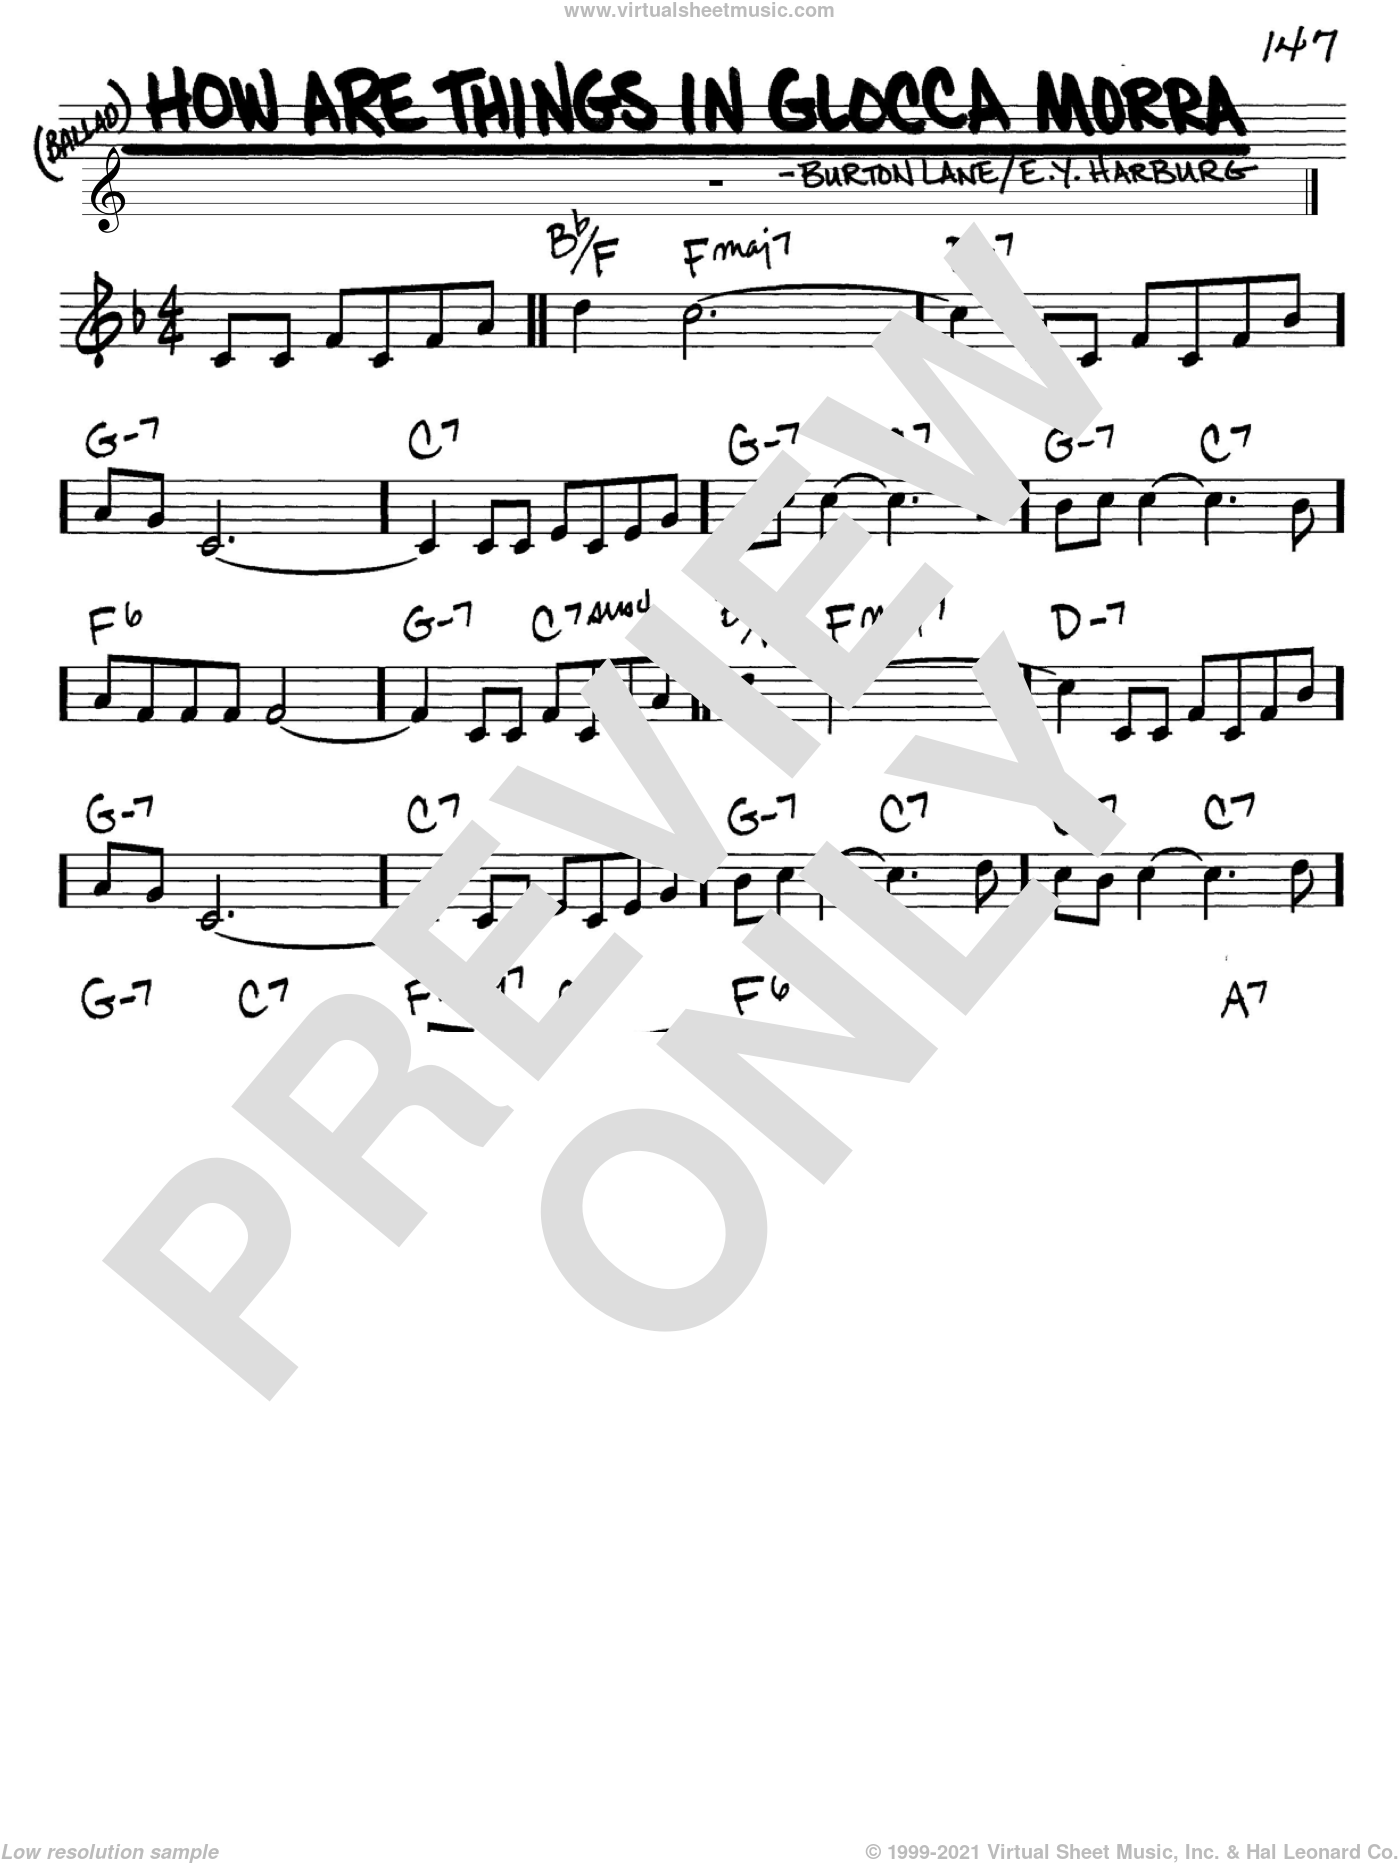 How Are Things In Glocca Morra sheet music for voice and other instruments (in C) by E.Y. Harburg and Burton Lane, intermediate skill level